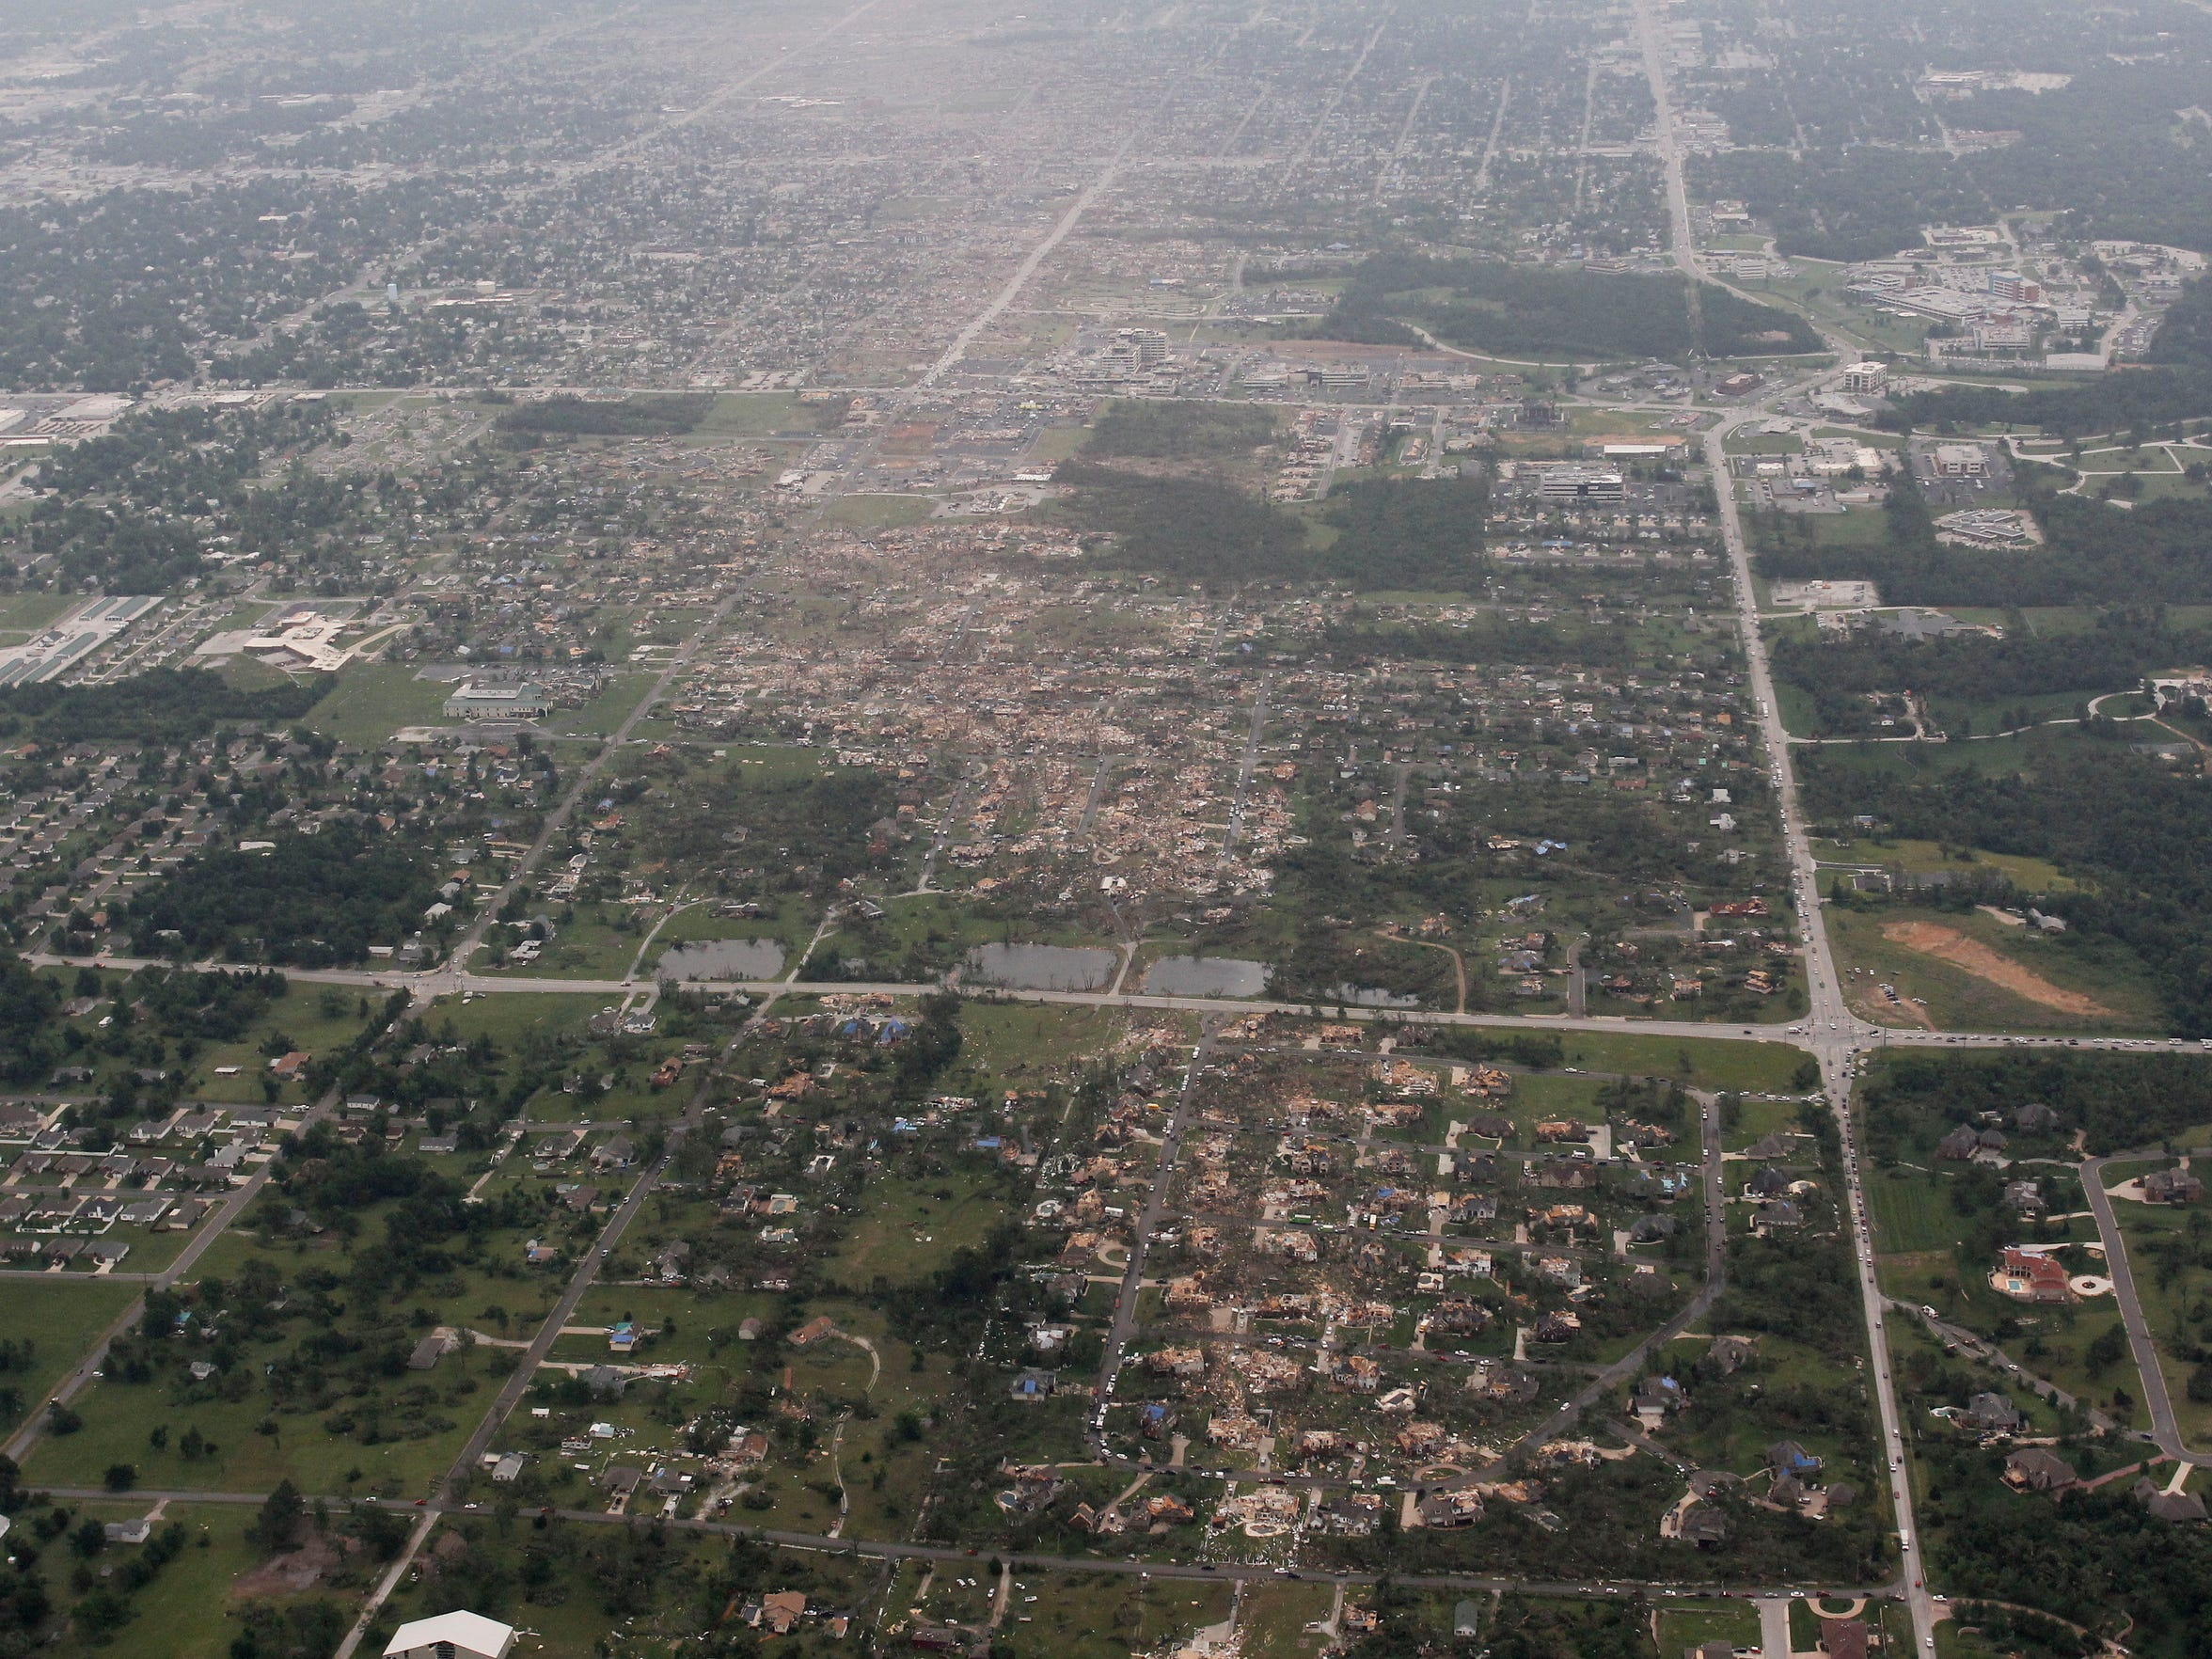 An aerial view of tornado damage in Joplin on Tuesday, May 24, 2011.